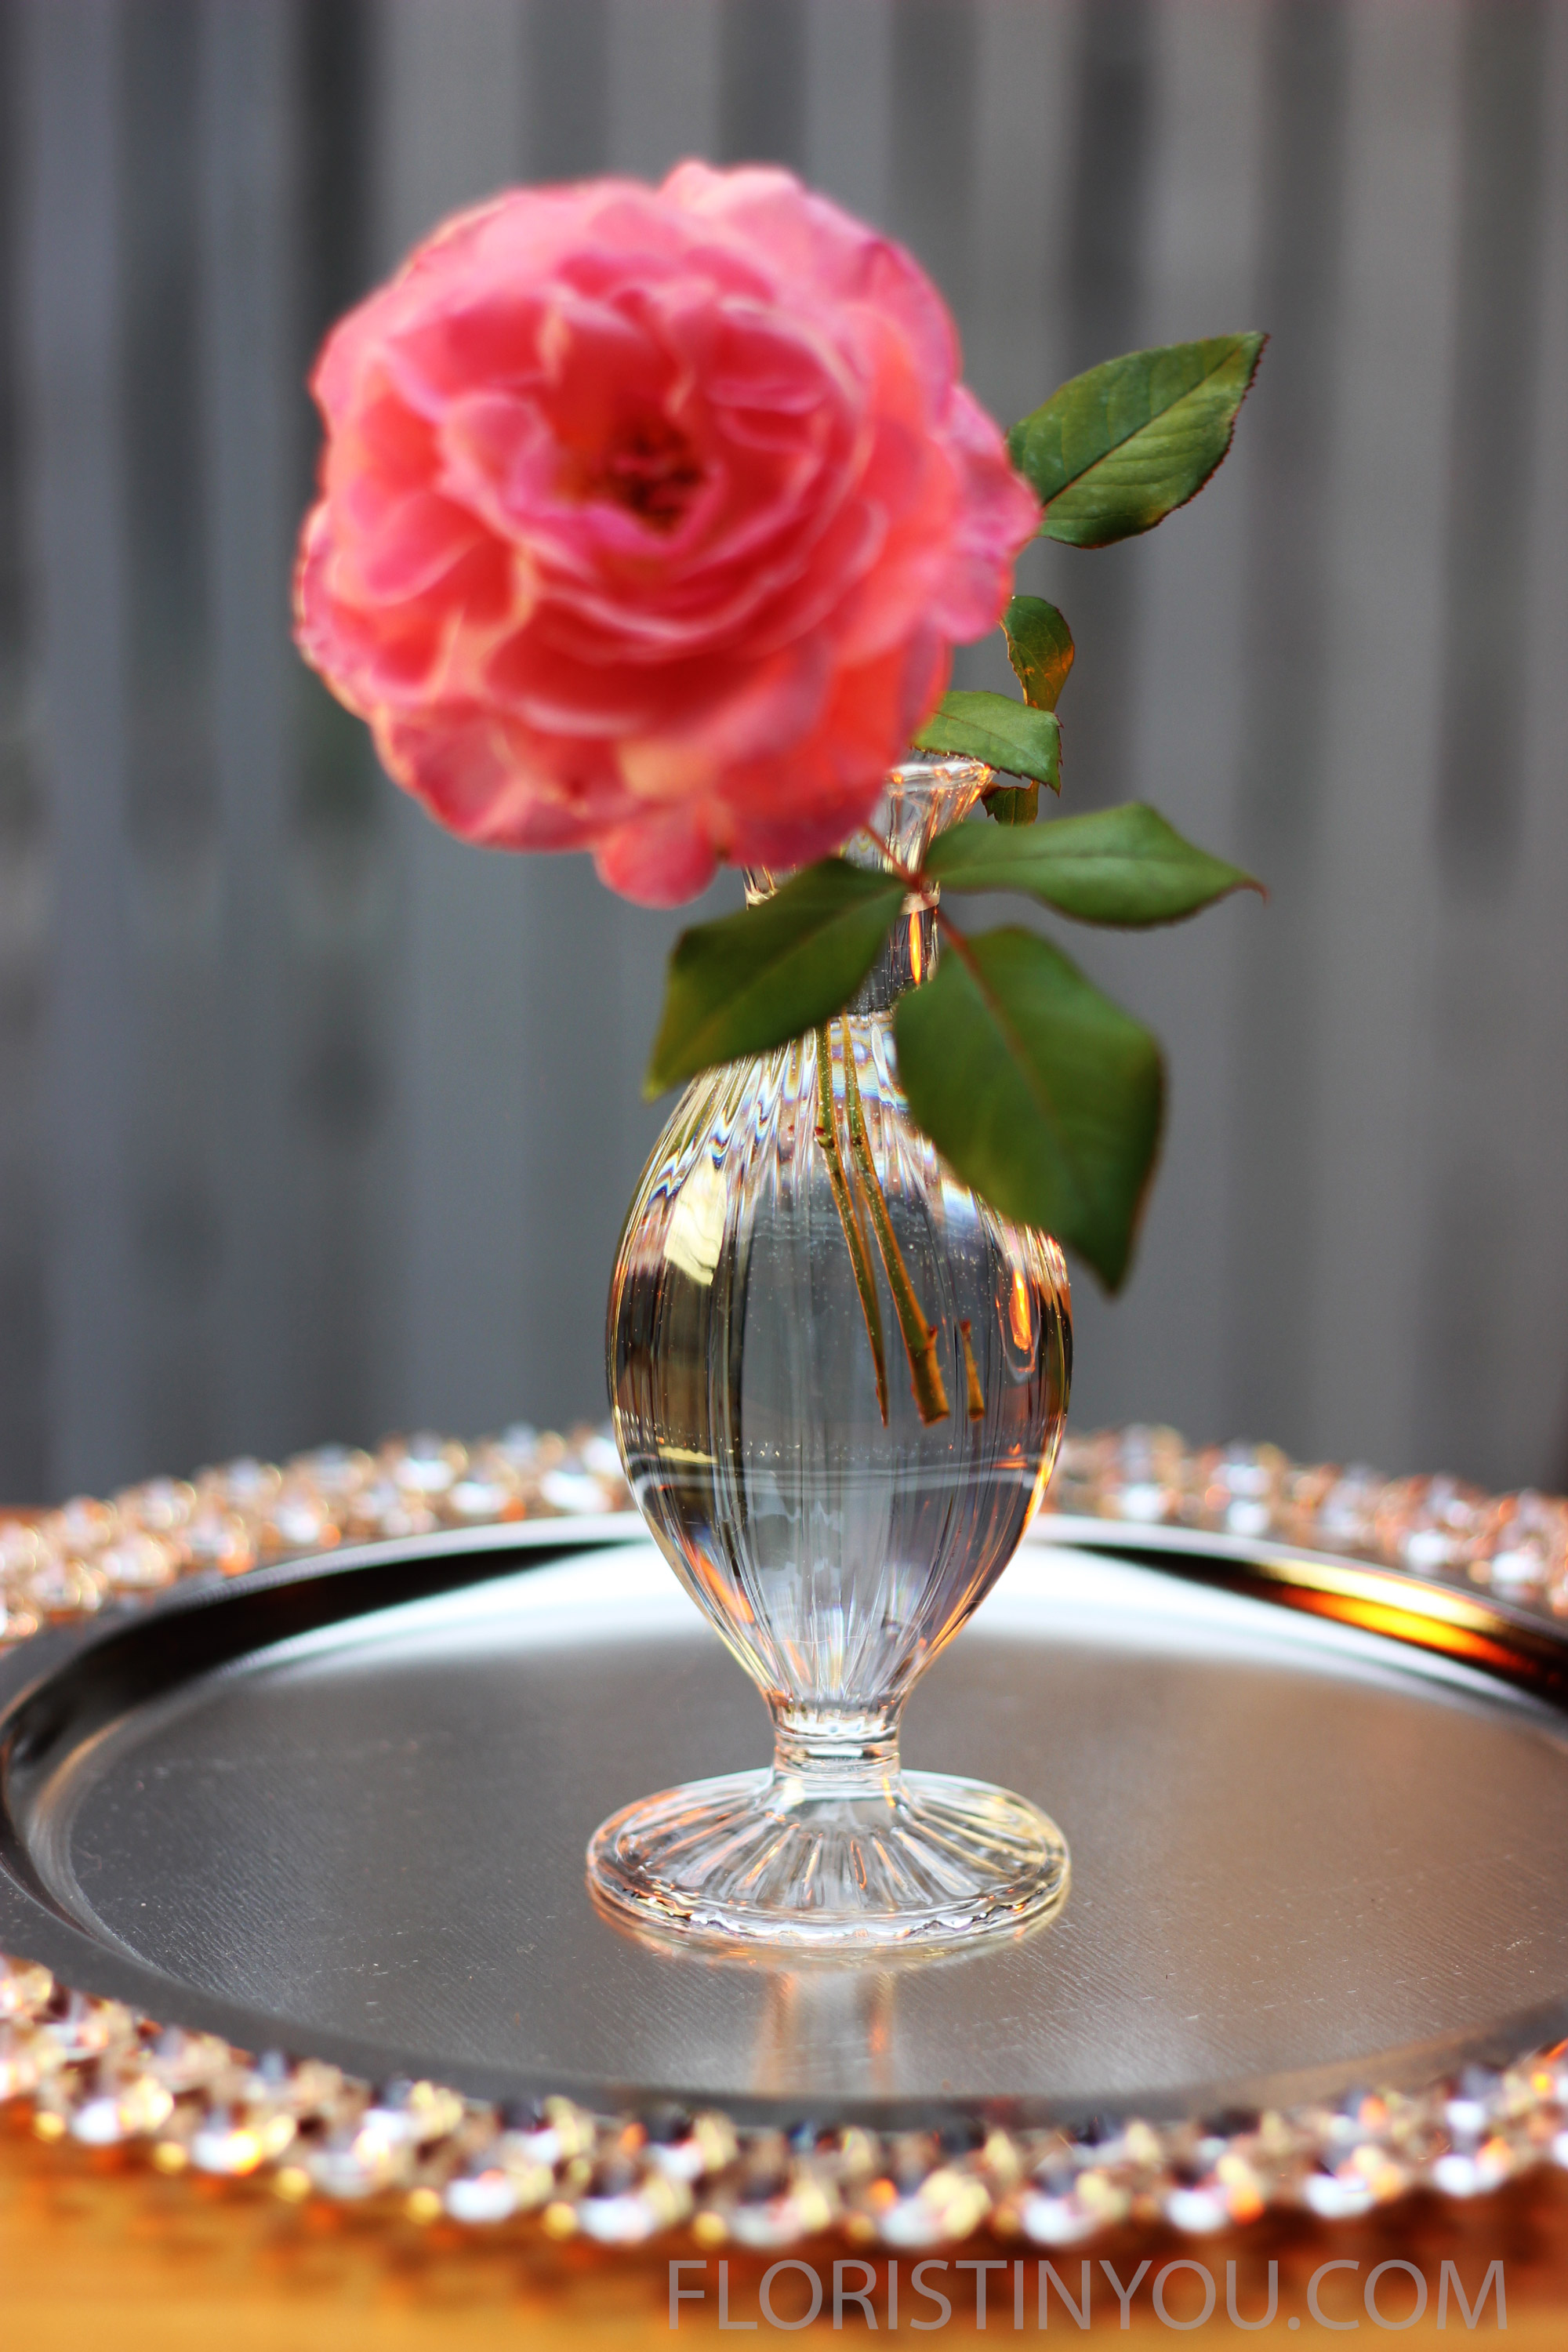 A short bloom goes in the smallest vase in the front.